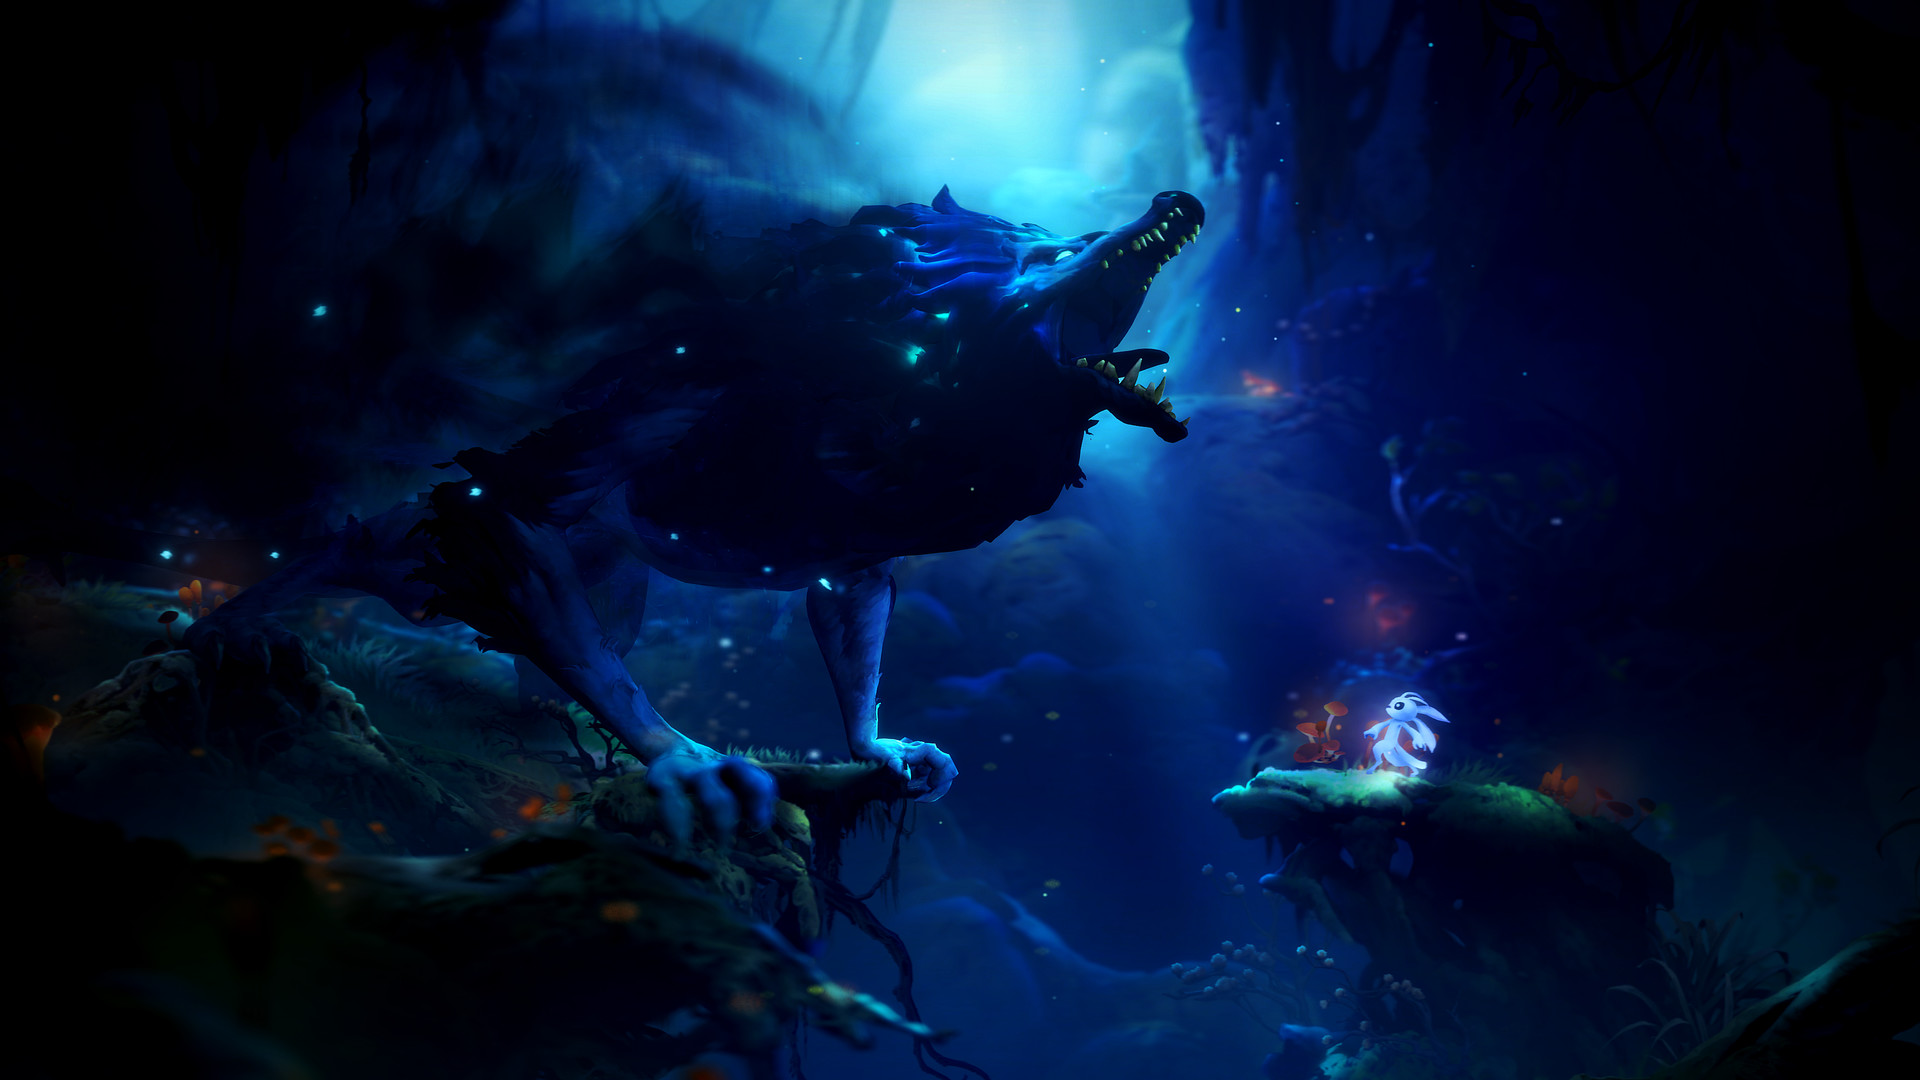 Ori and the Will of the Wisps on Steam